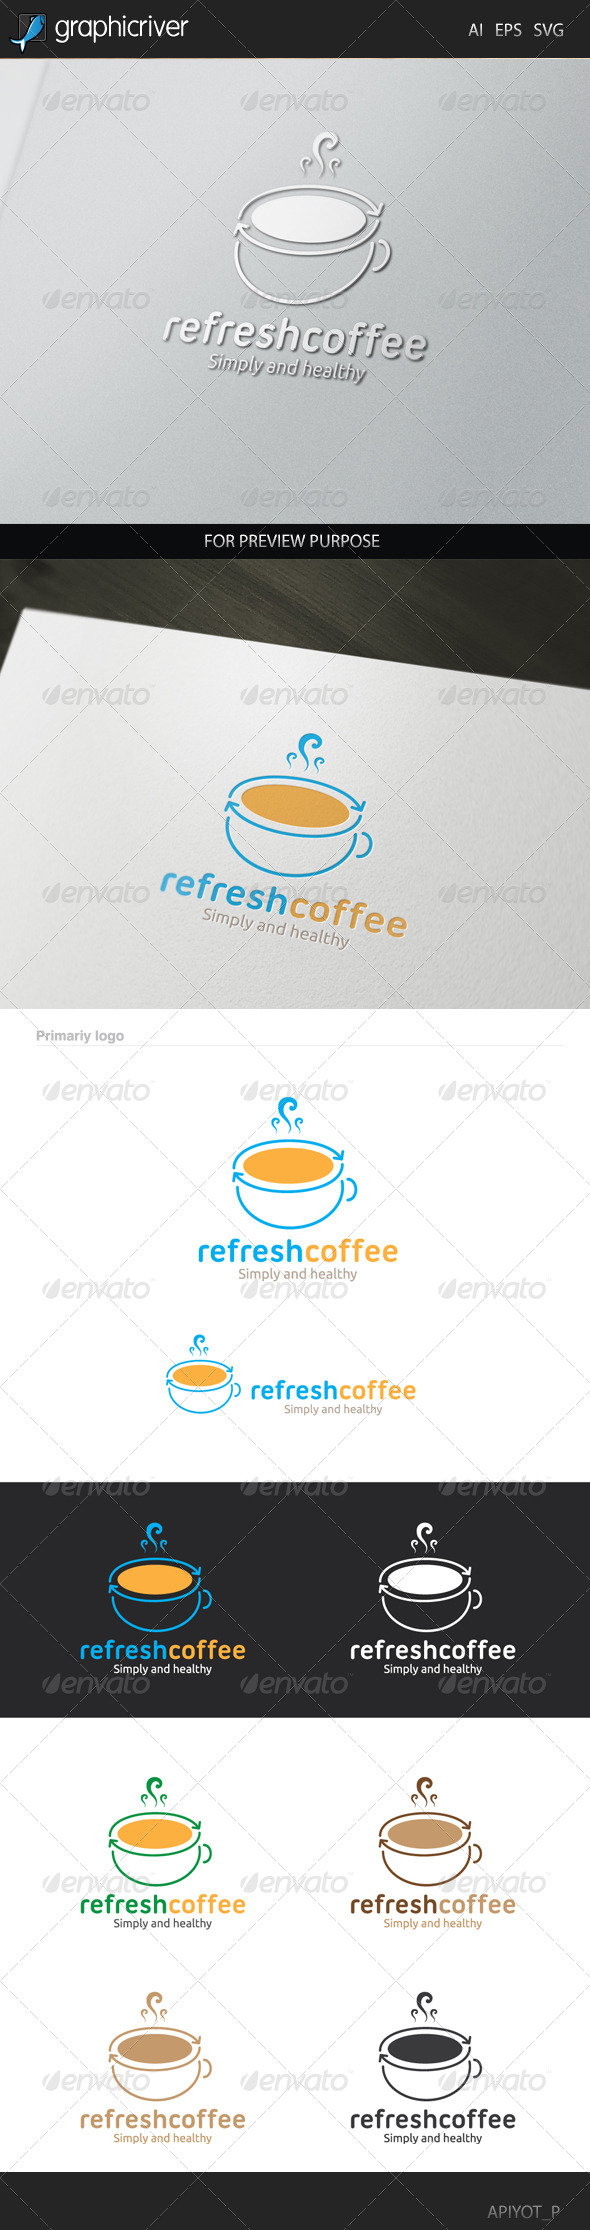 GraphicRiver Refresh Coffee logo 8427392